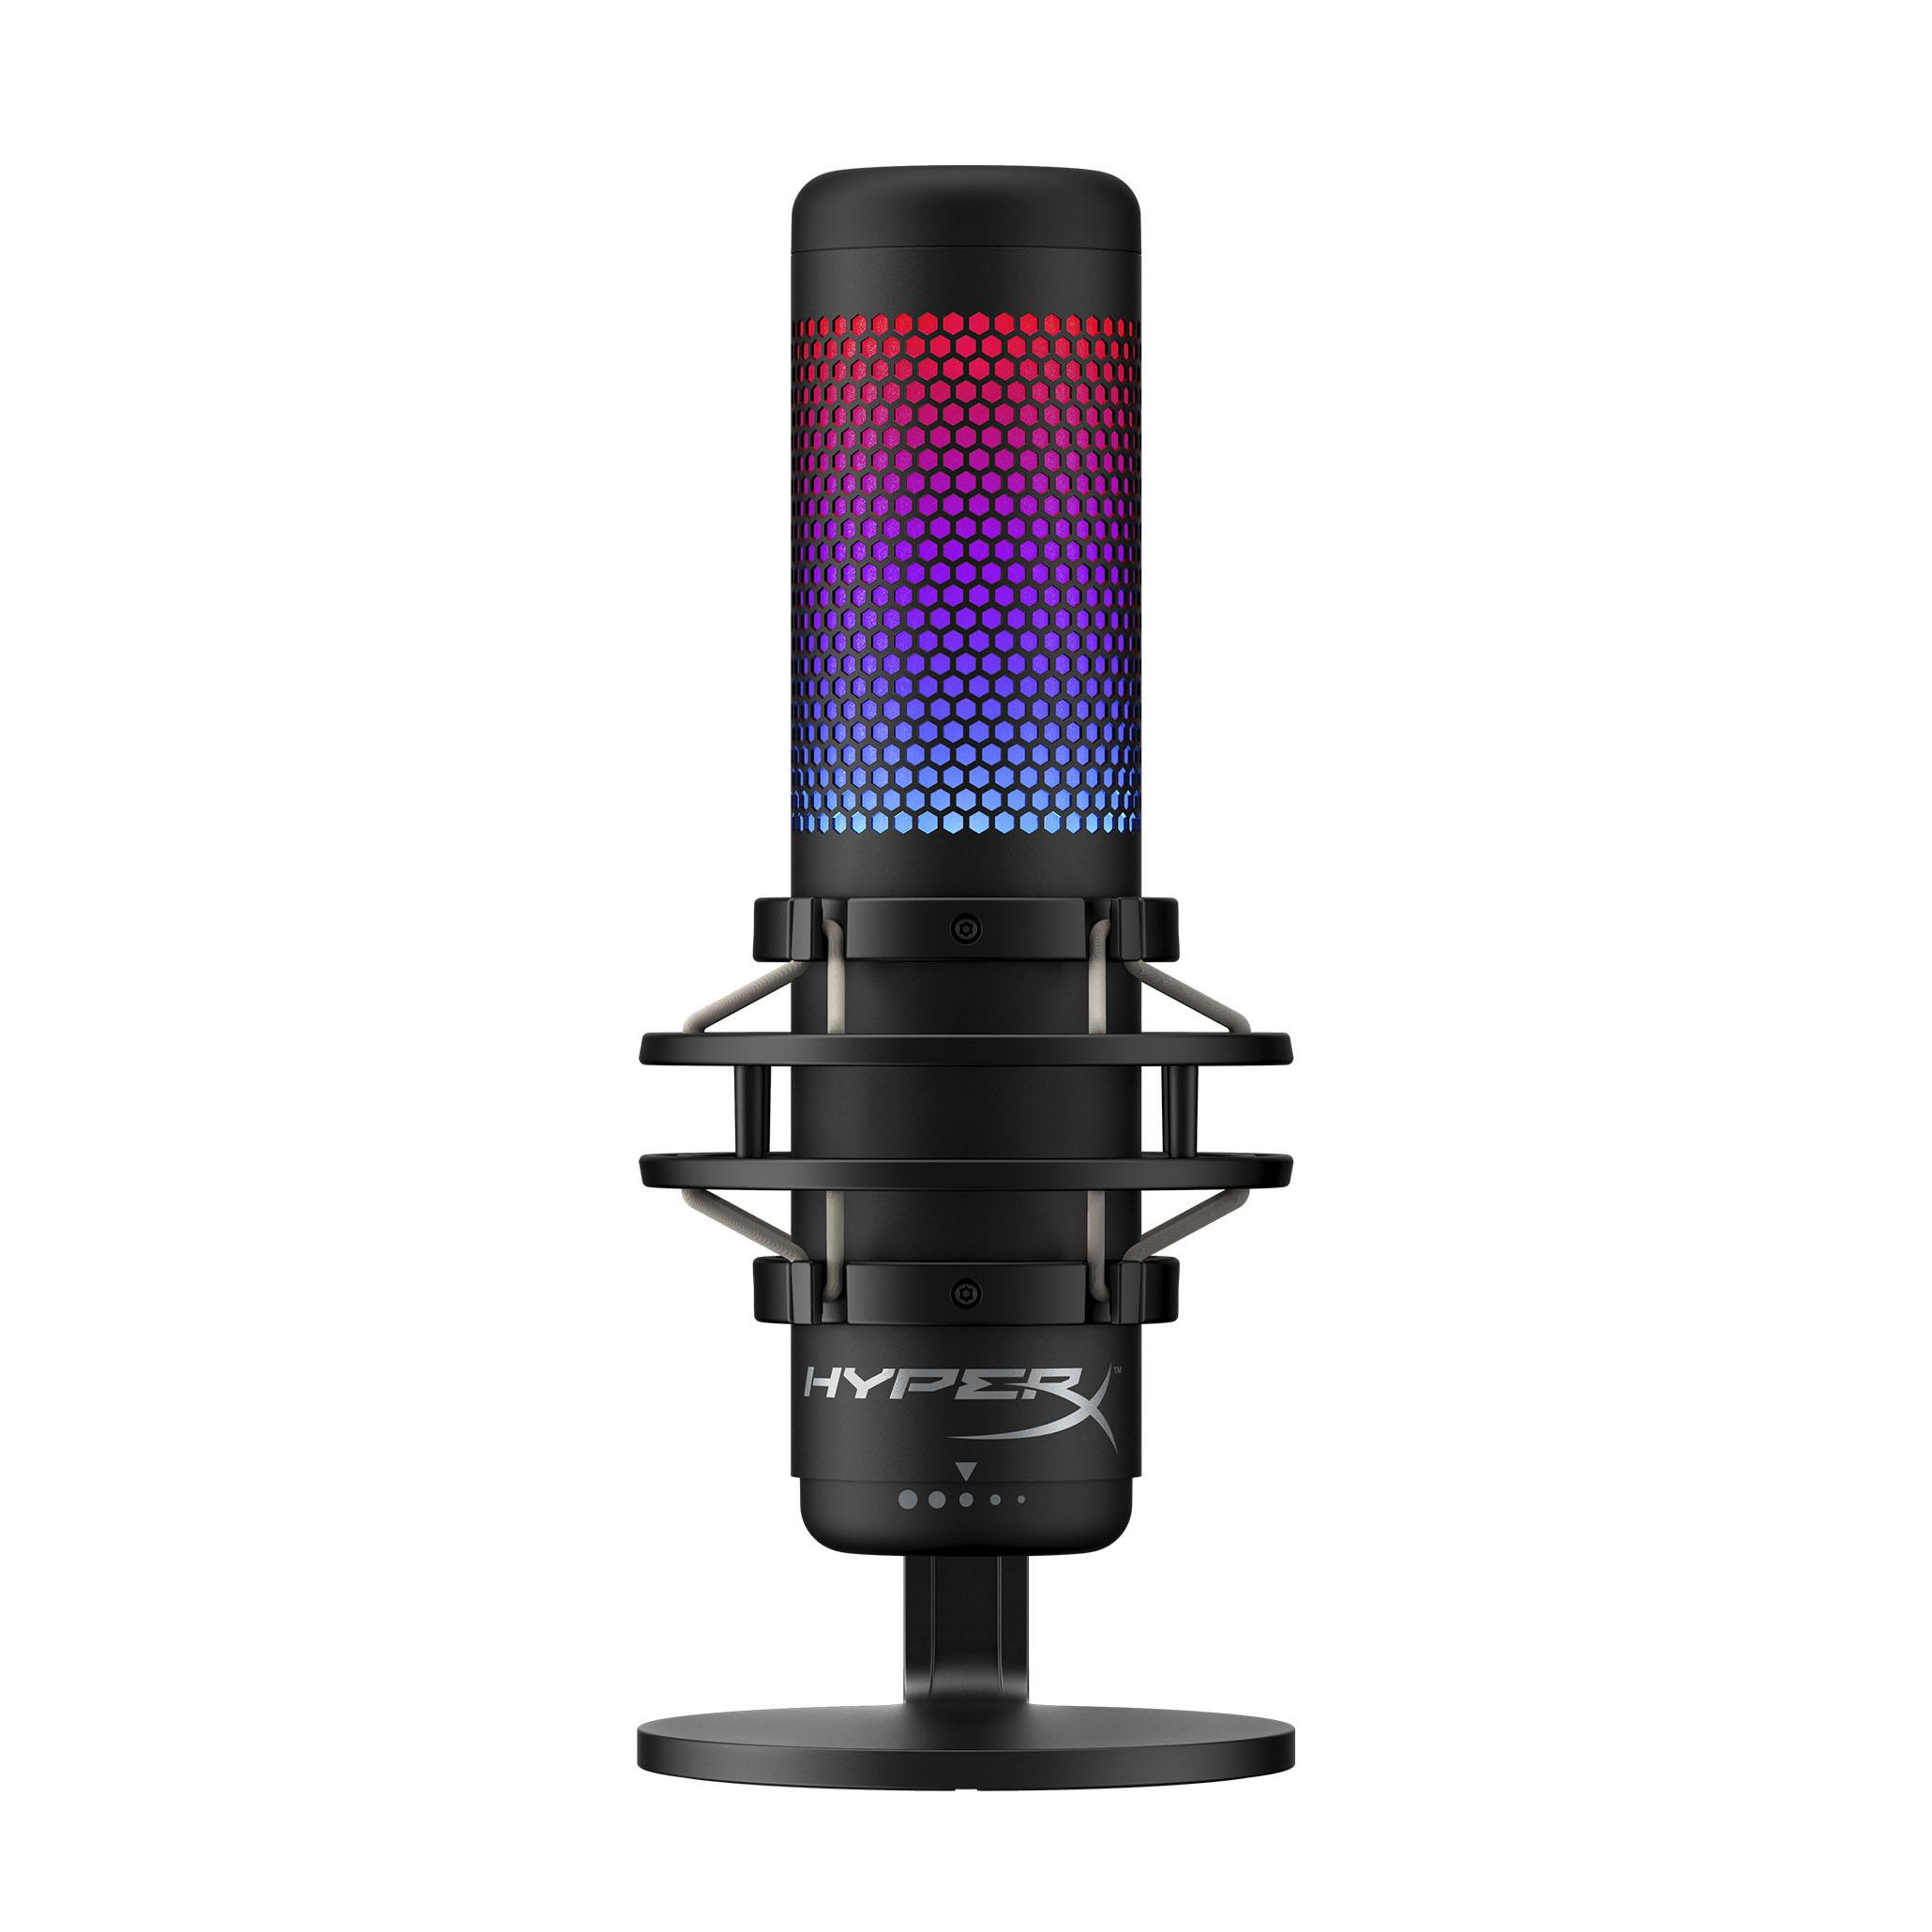 HyperX QuadCast S RGB Gaming Microphone Review